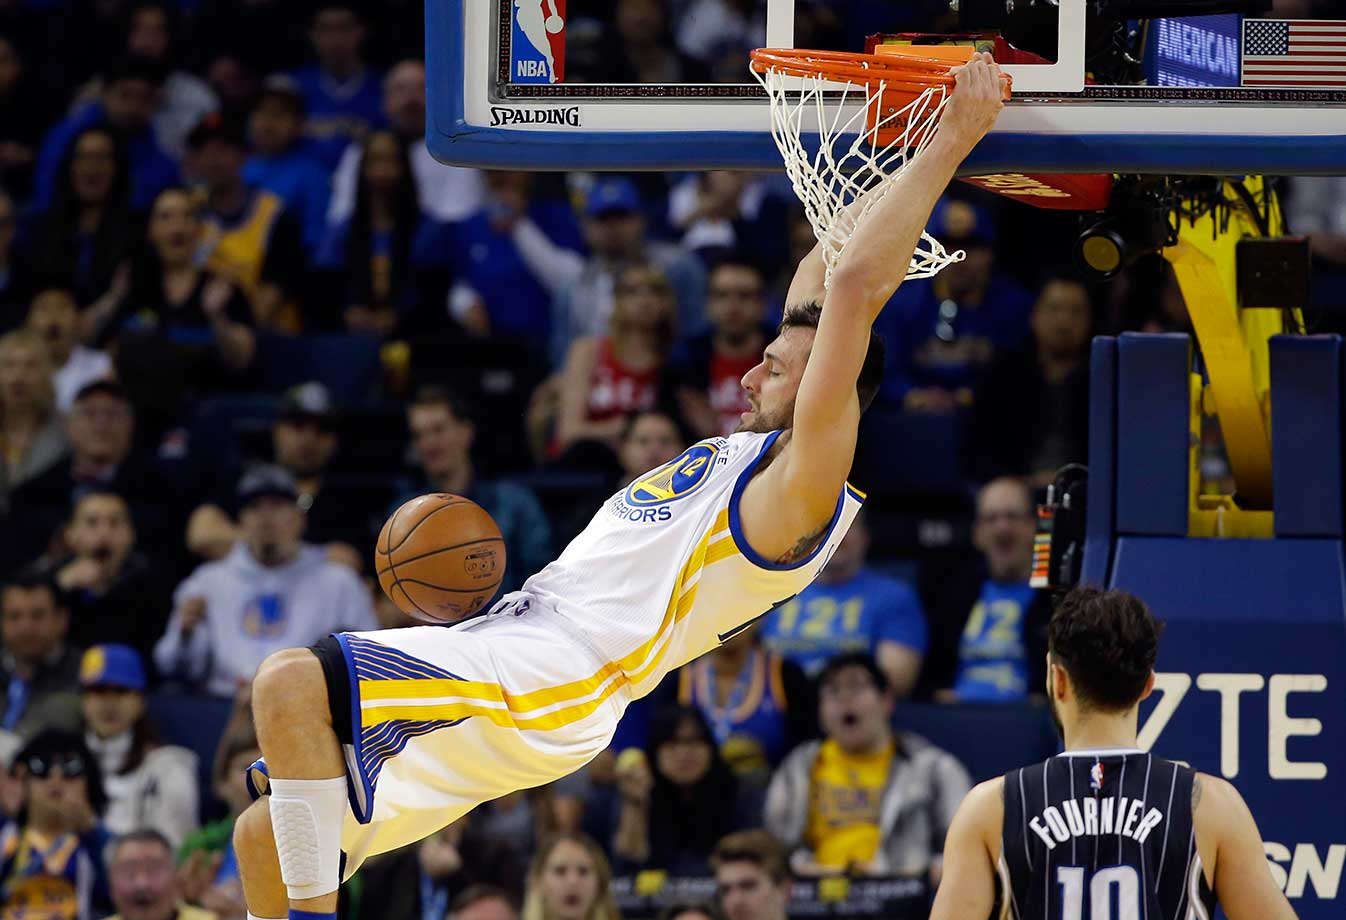 Andrew Bogut of Golden State dunks against the Orlando Magic.